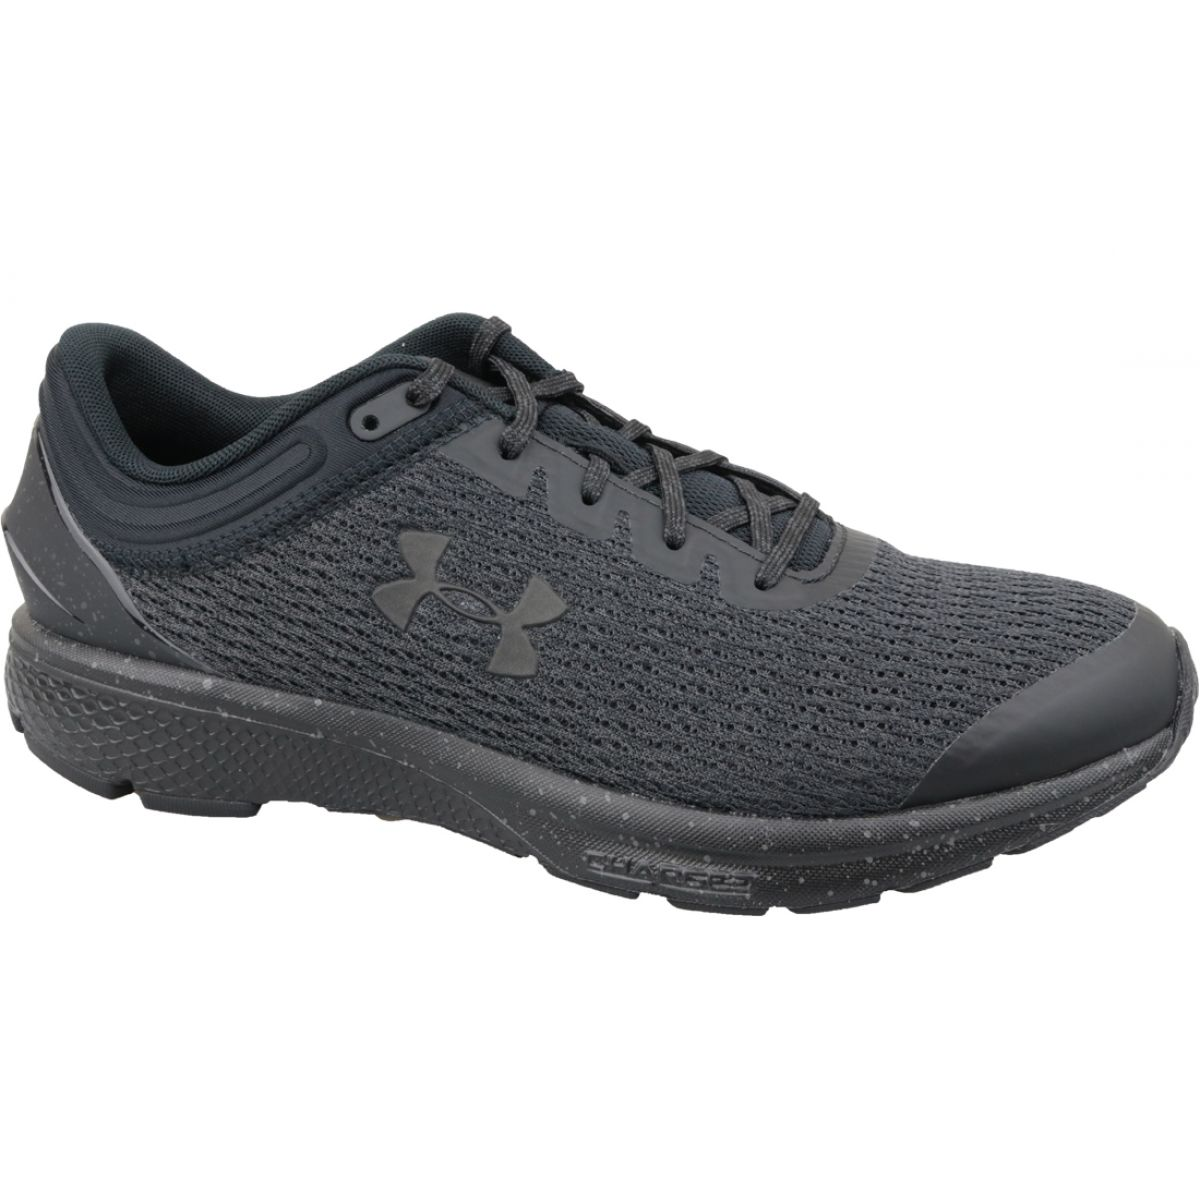 Under Armor Charged Escape 3